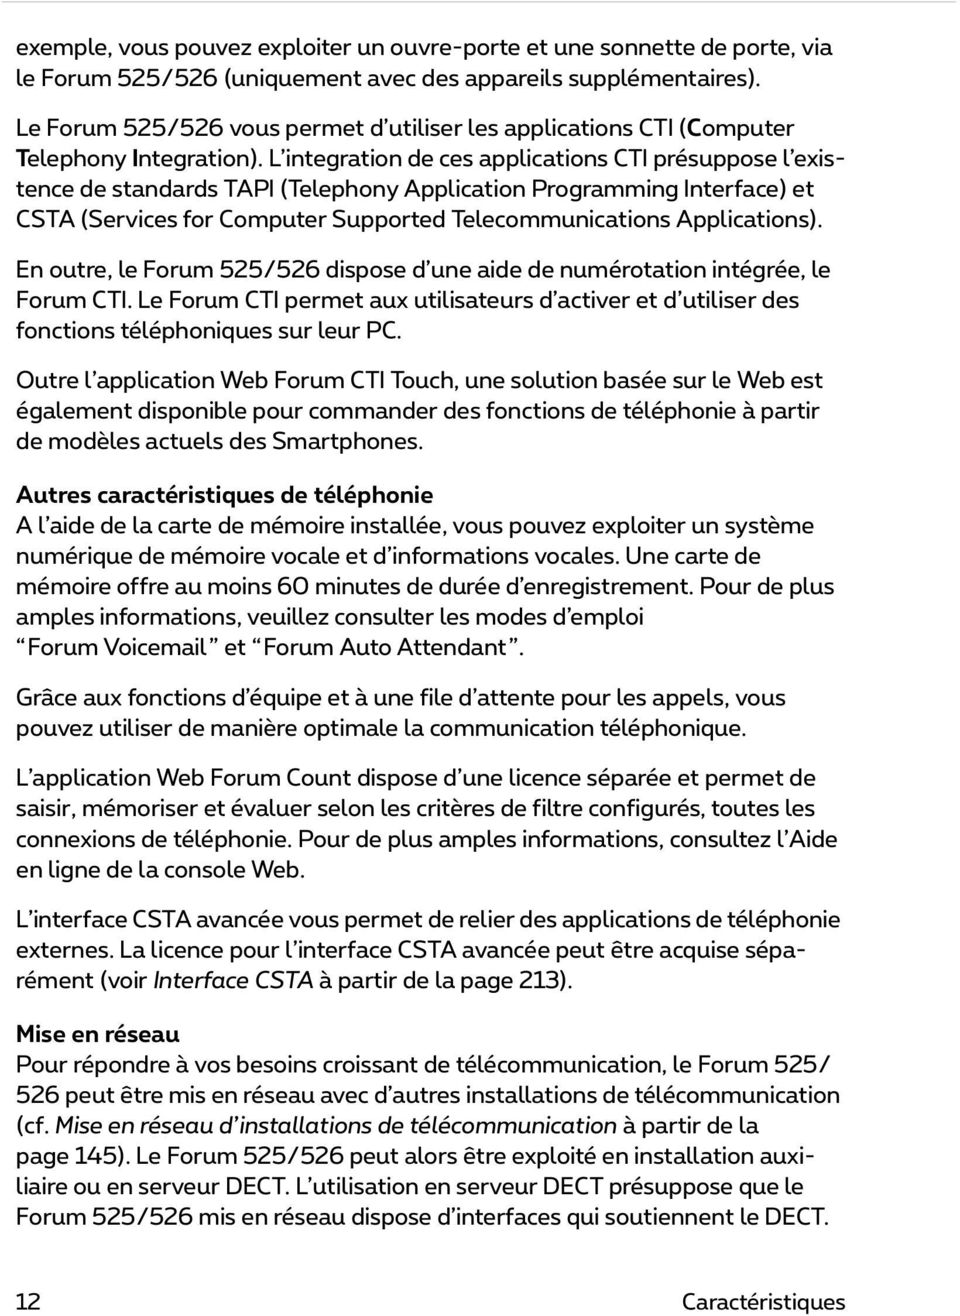 L integration de ces applications CTI présuppose l existence de standards TAPI (Telephony Application Programming Interface) et CSTA (Services for Computer Supported Telecommunications Applications).